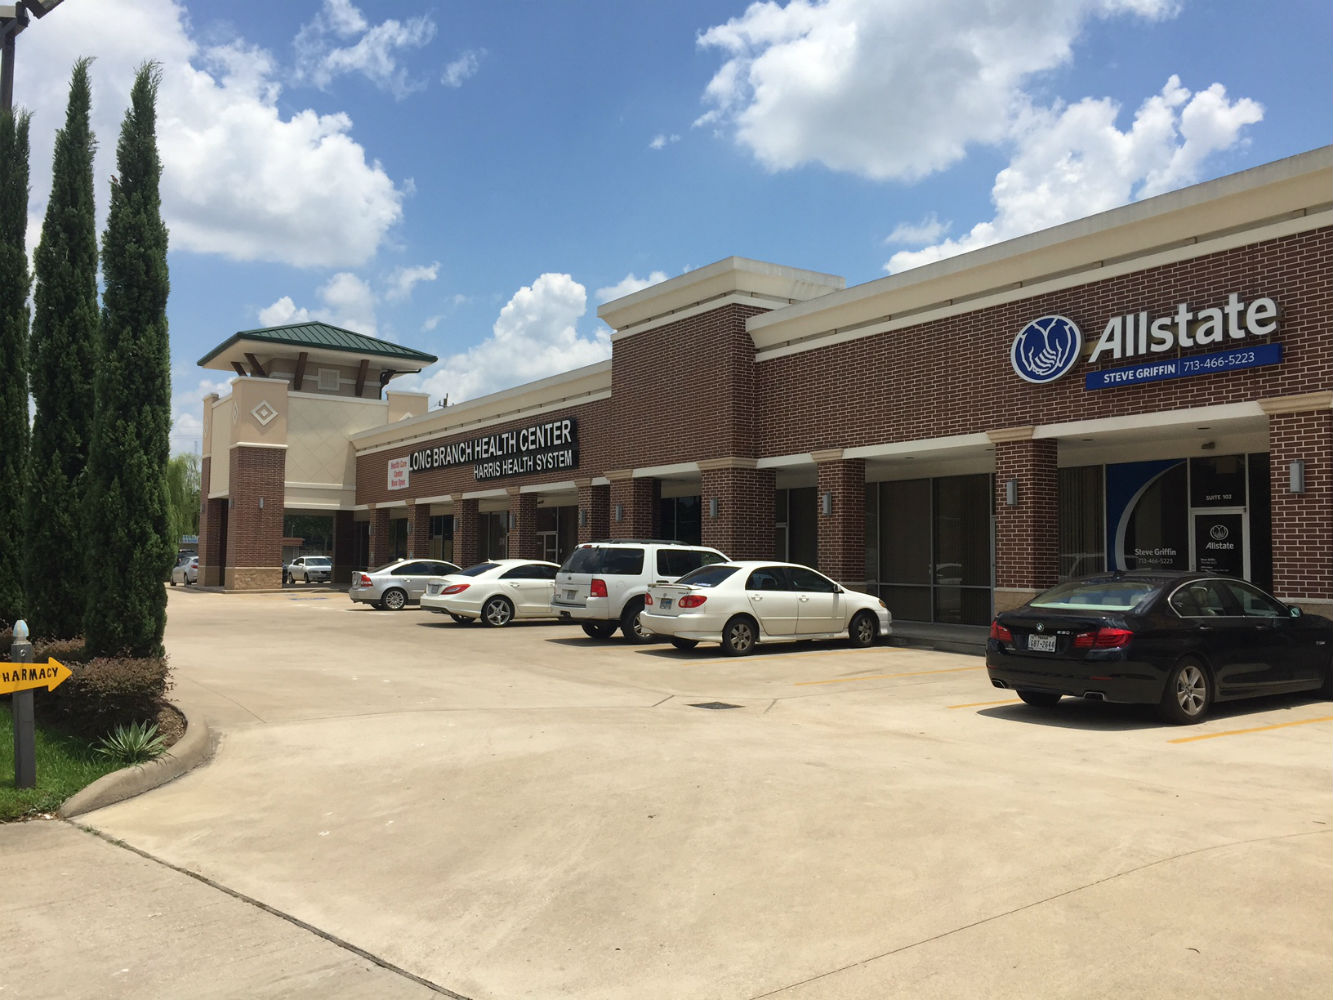 Allstate insurance agent steven griffin coupons houston for Allstate motor club hotel discounts